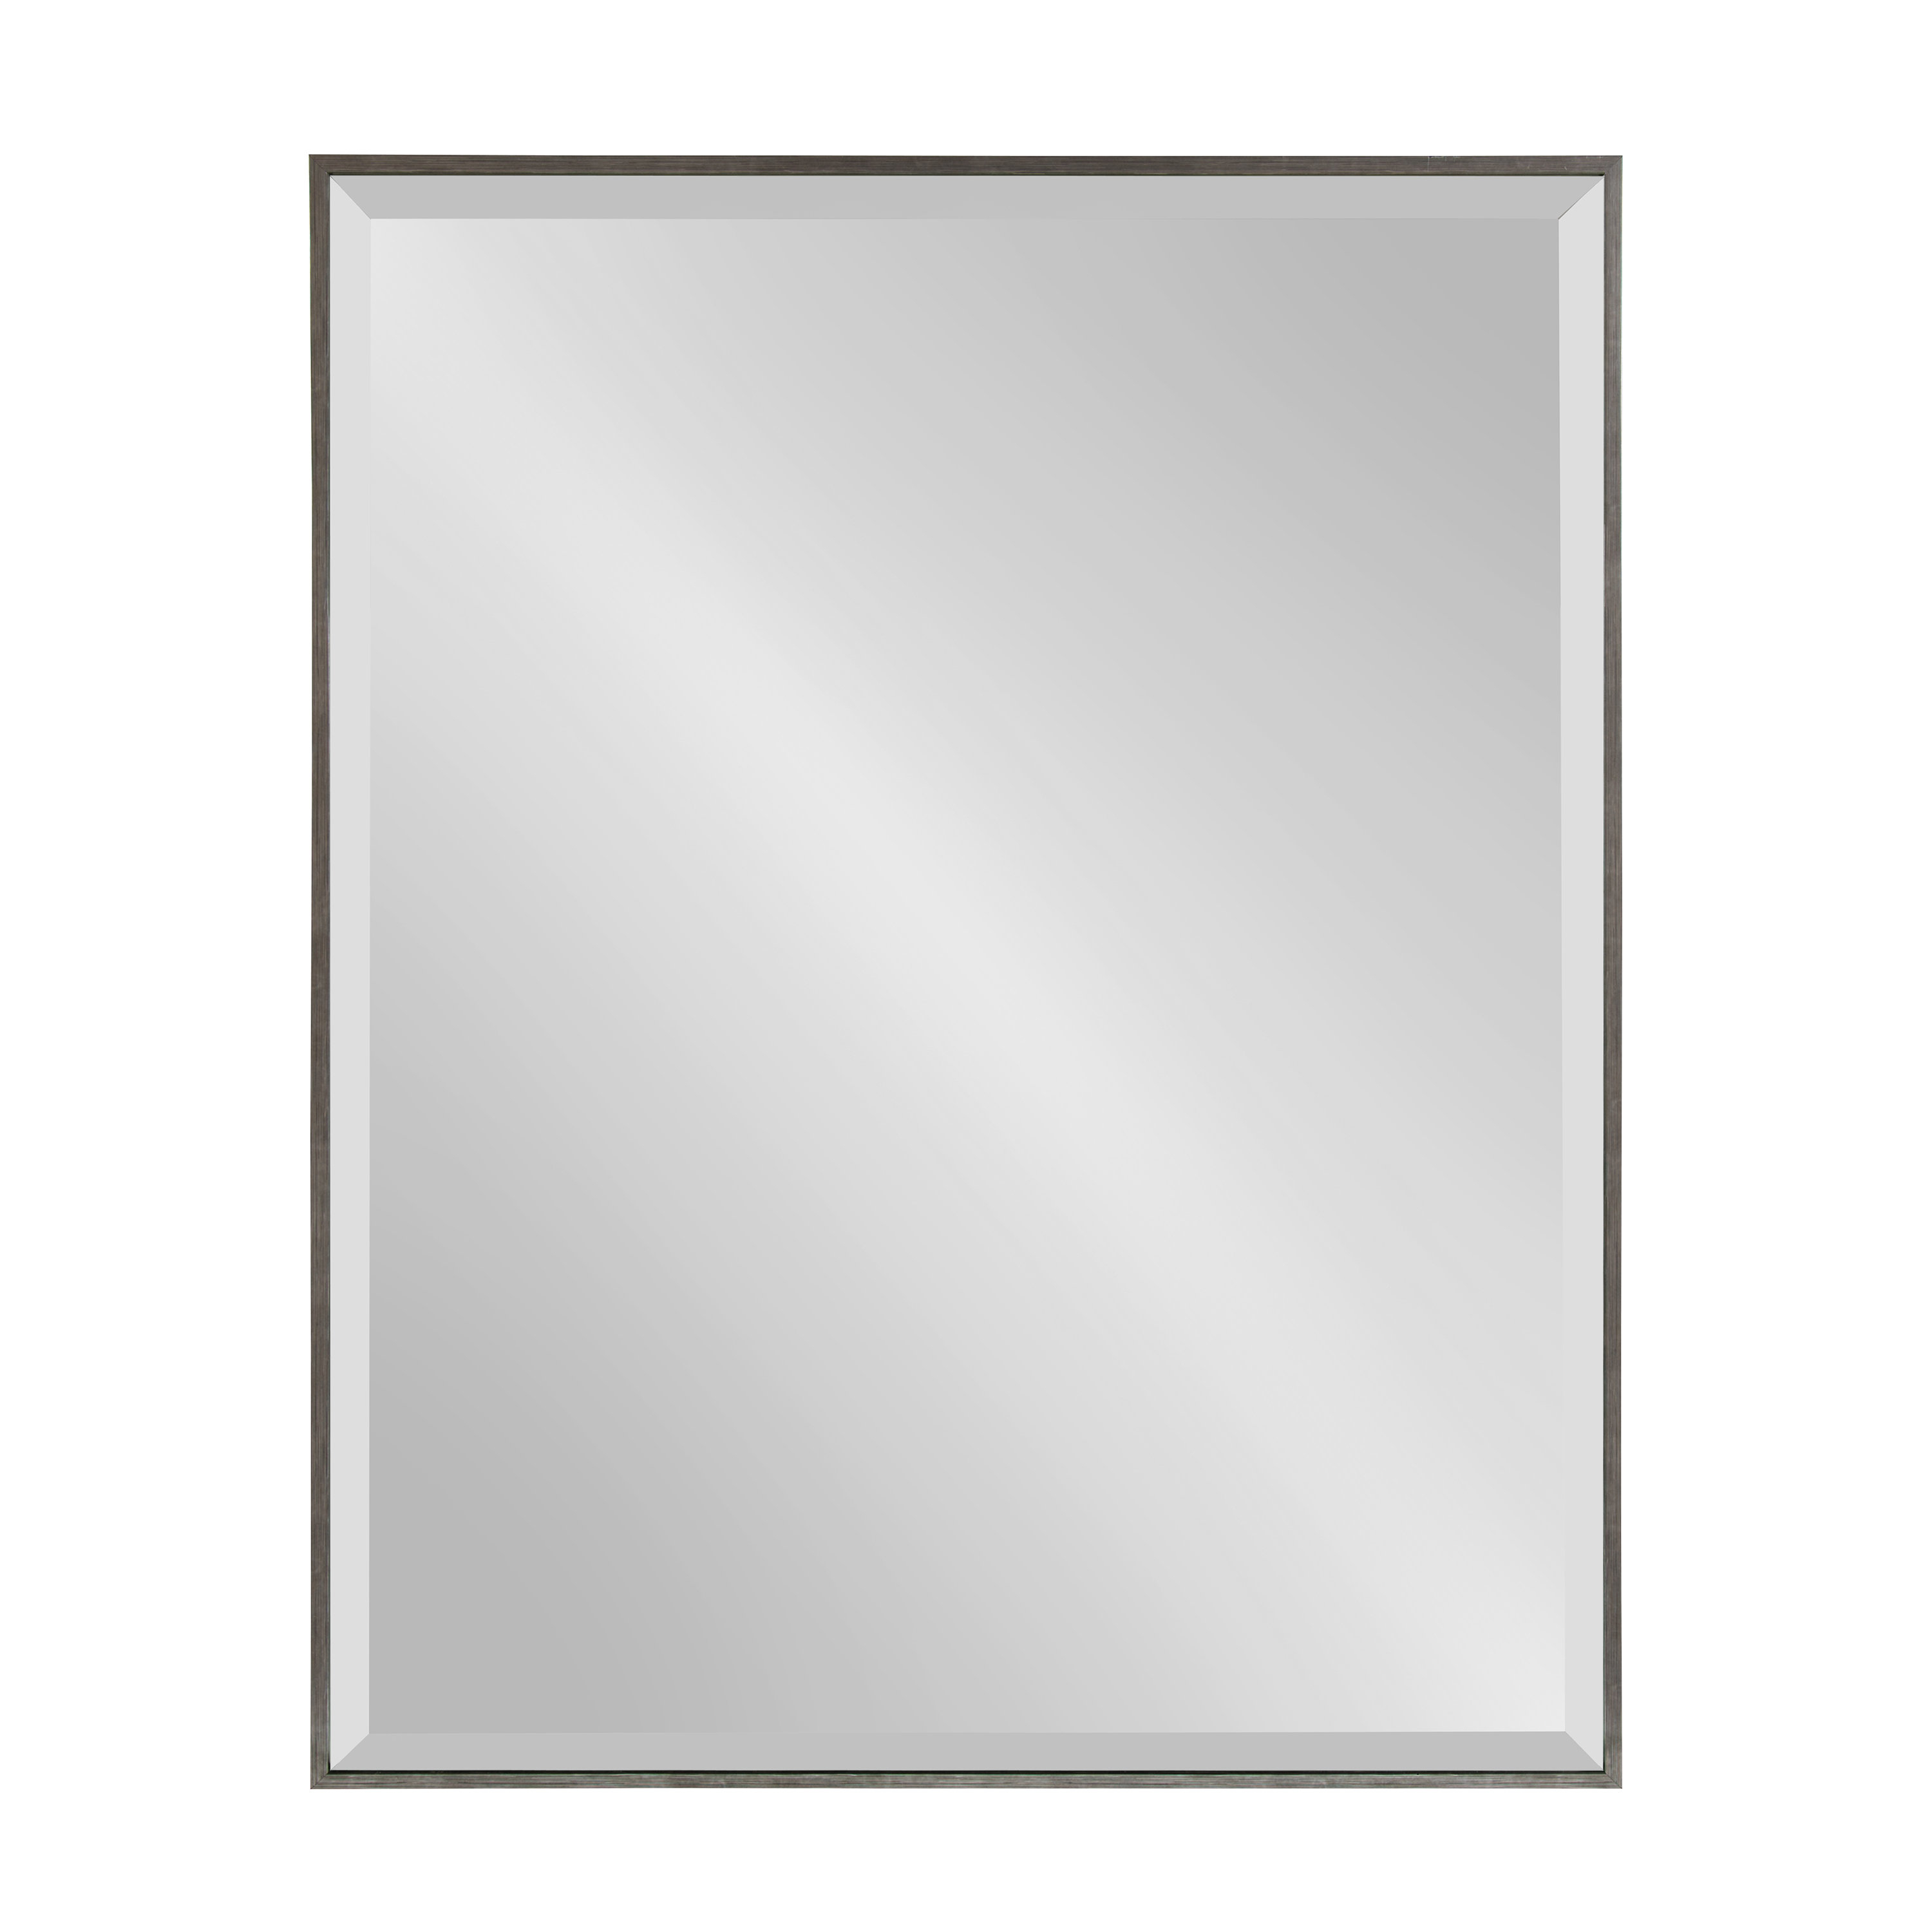 Shildon Beveled Accent Mirrors Pertaining To Most Recent Logsdon Traditional Beveled Accent Mirror (View 19 of 20)